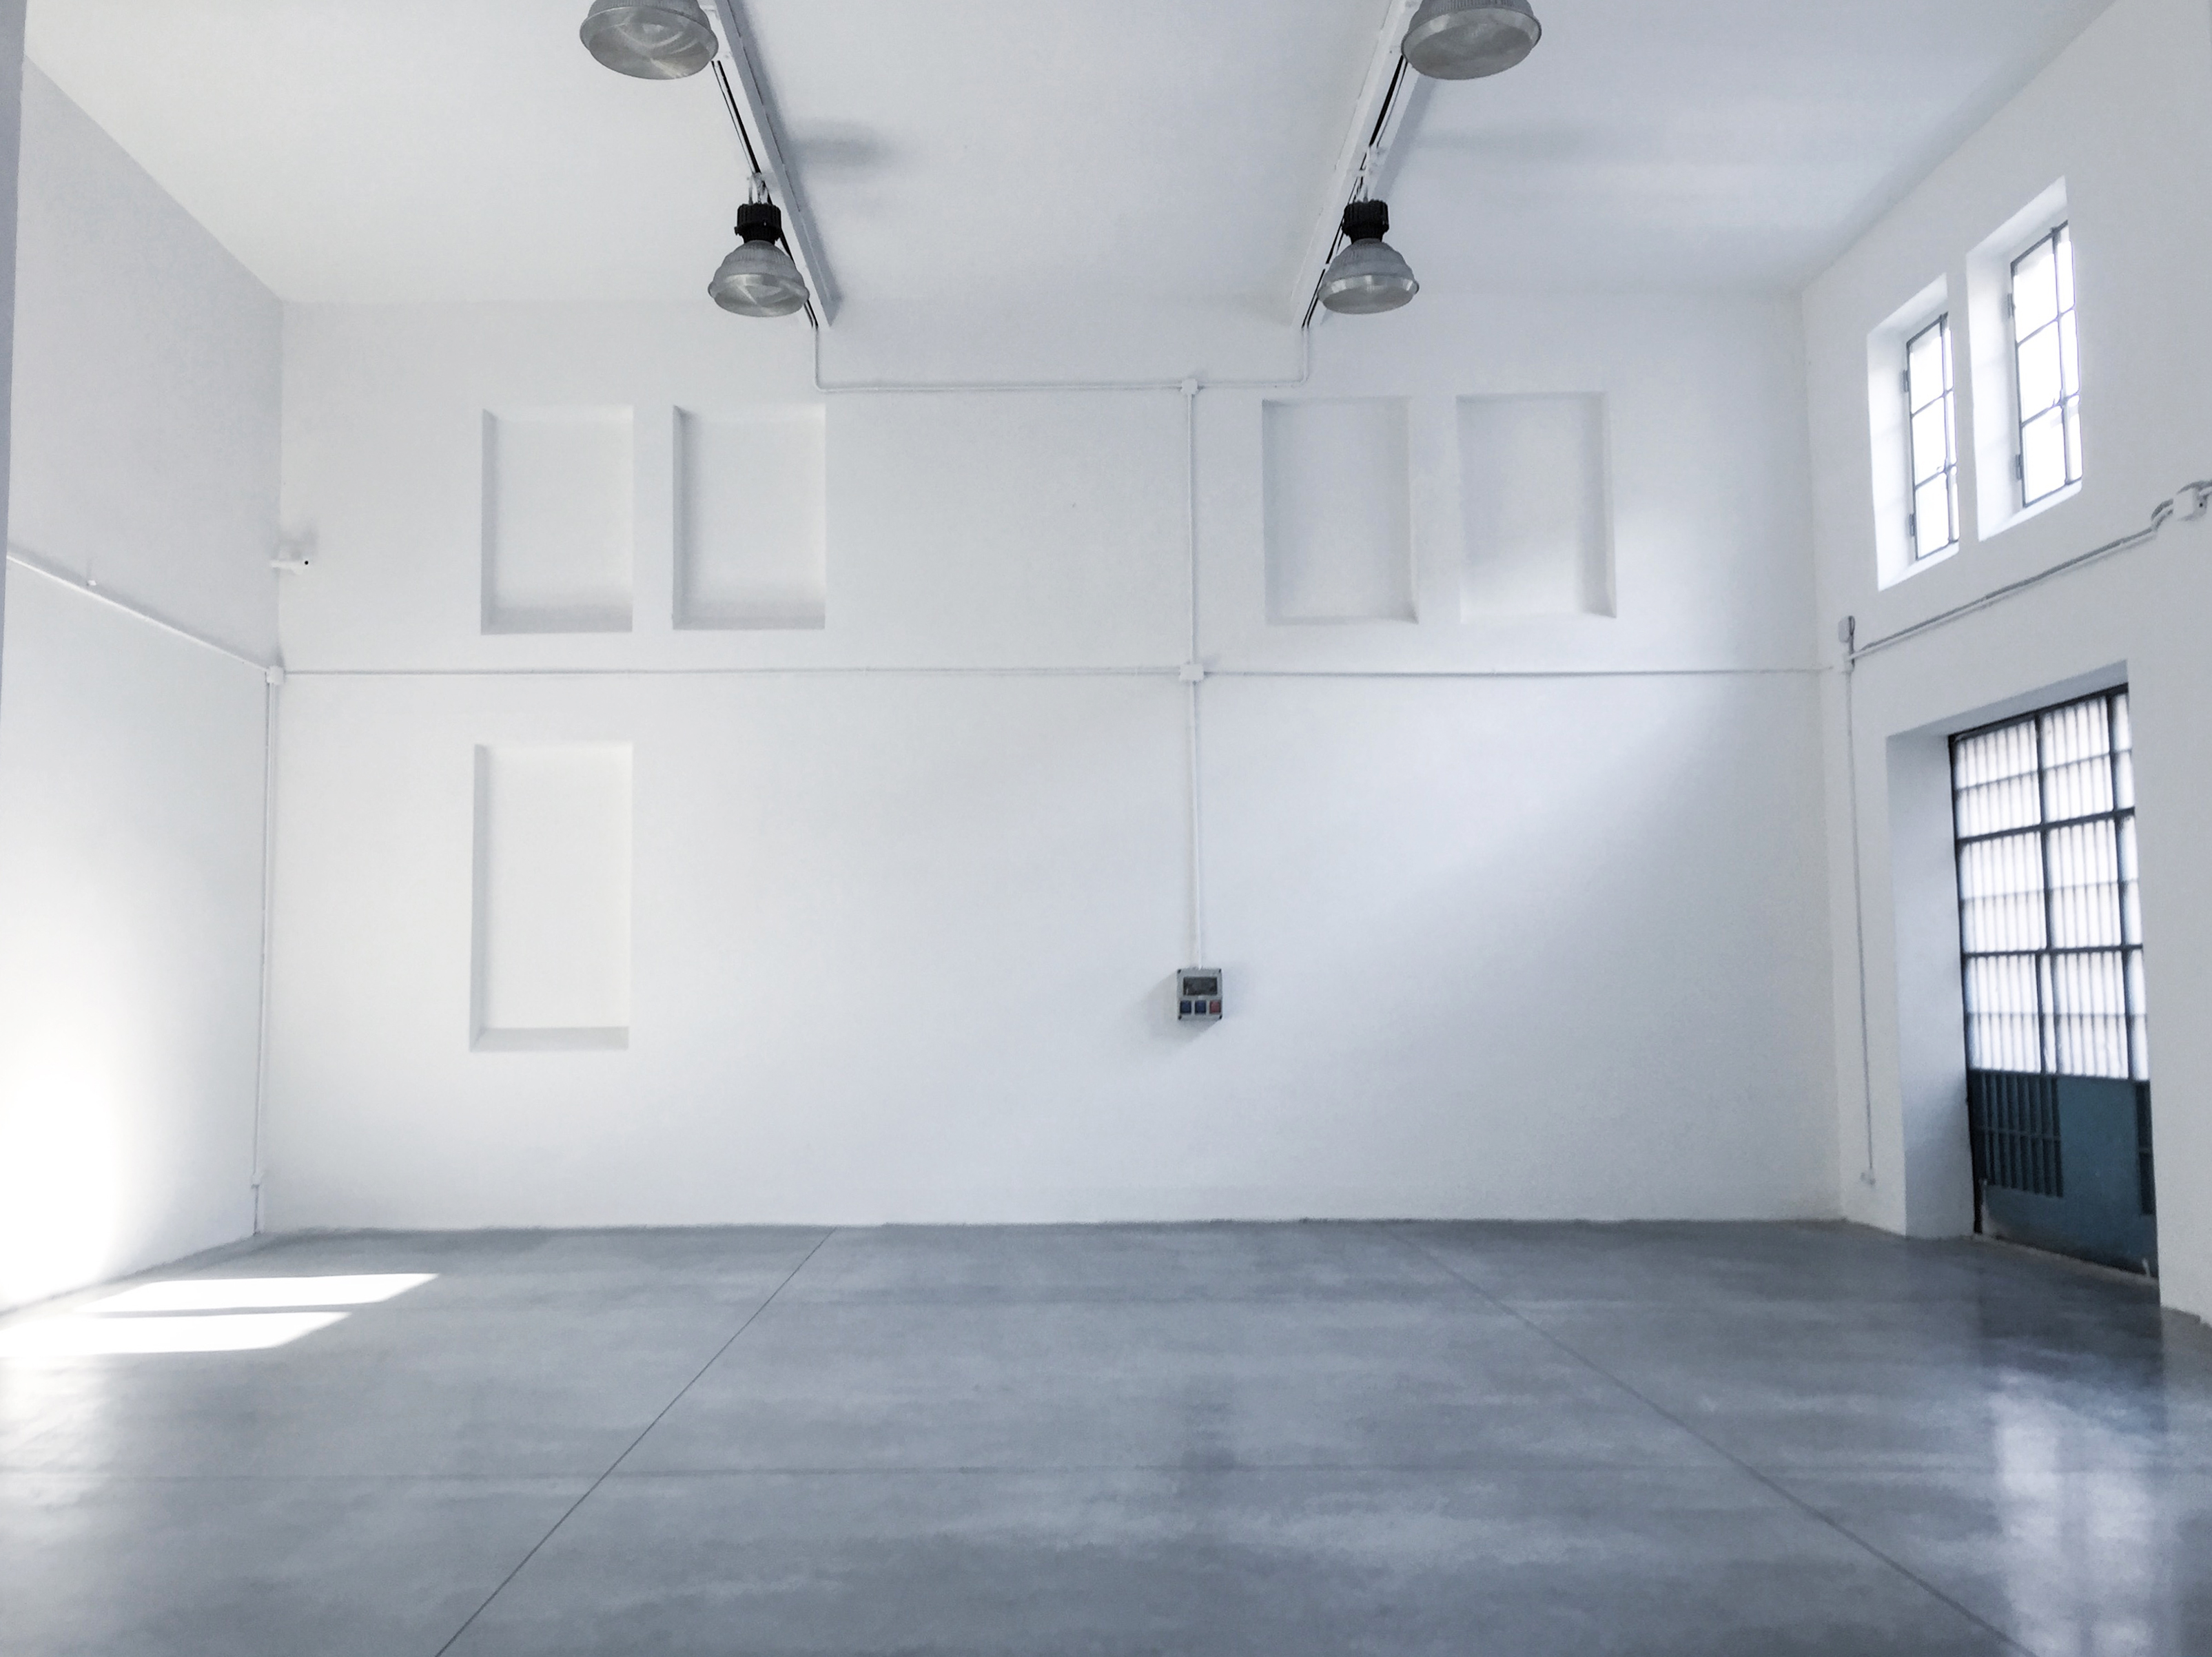 Opificio 31-Officina 31 - Open space, Spazio industriale di 180mq in Via Tortona 31 | location disallestita 3